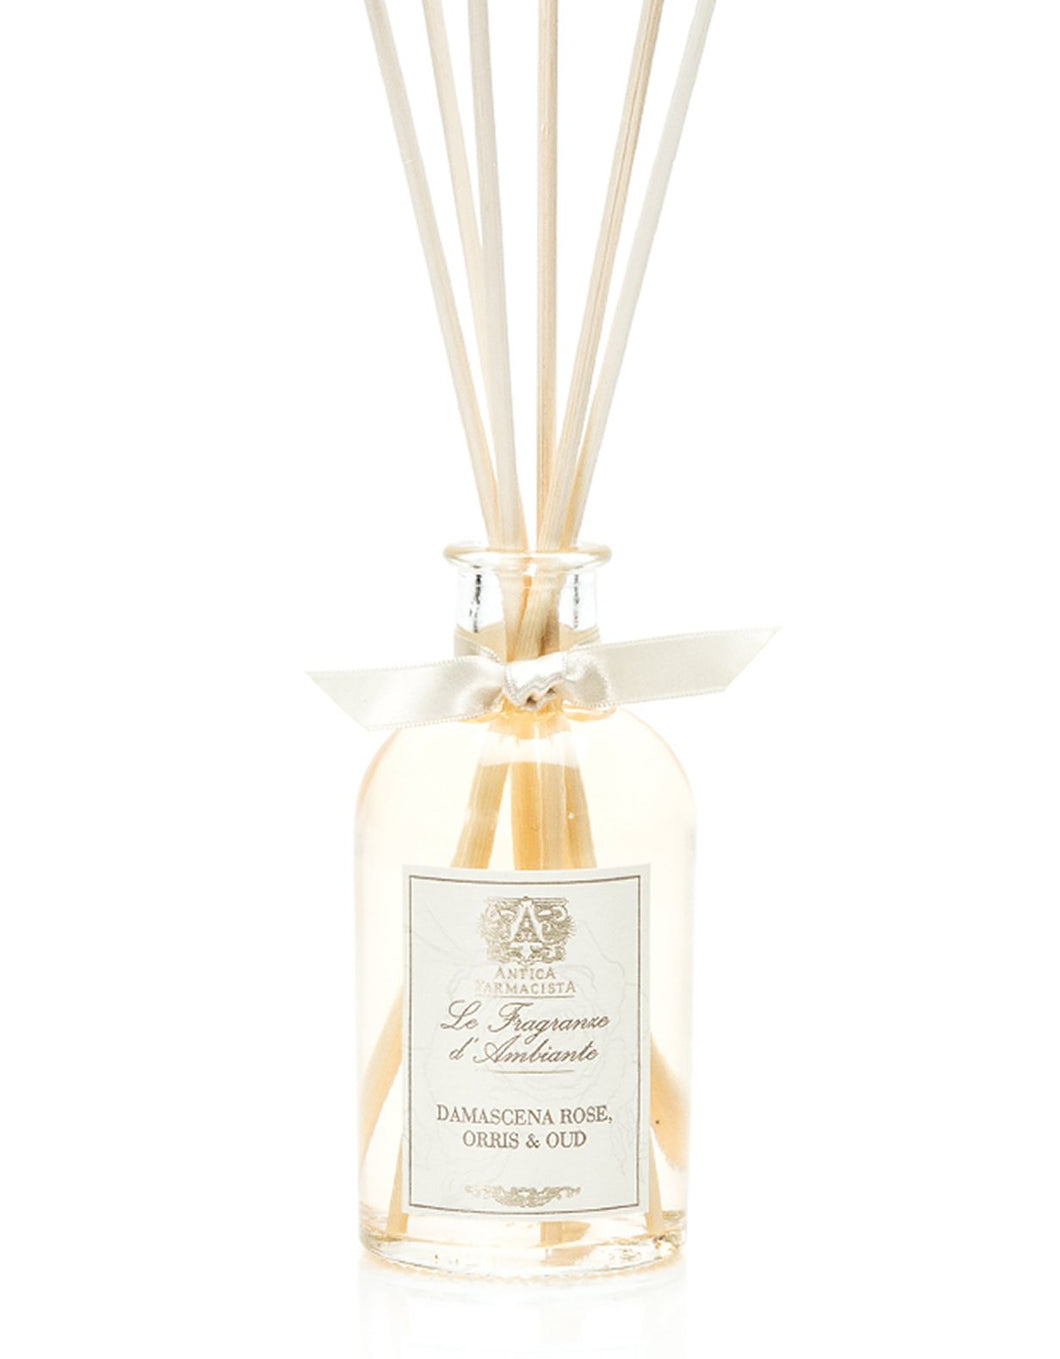 Damascena Rose, Orris & Oud Fragrance Diffuser by Antica Farmacista - 2 sizes